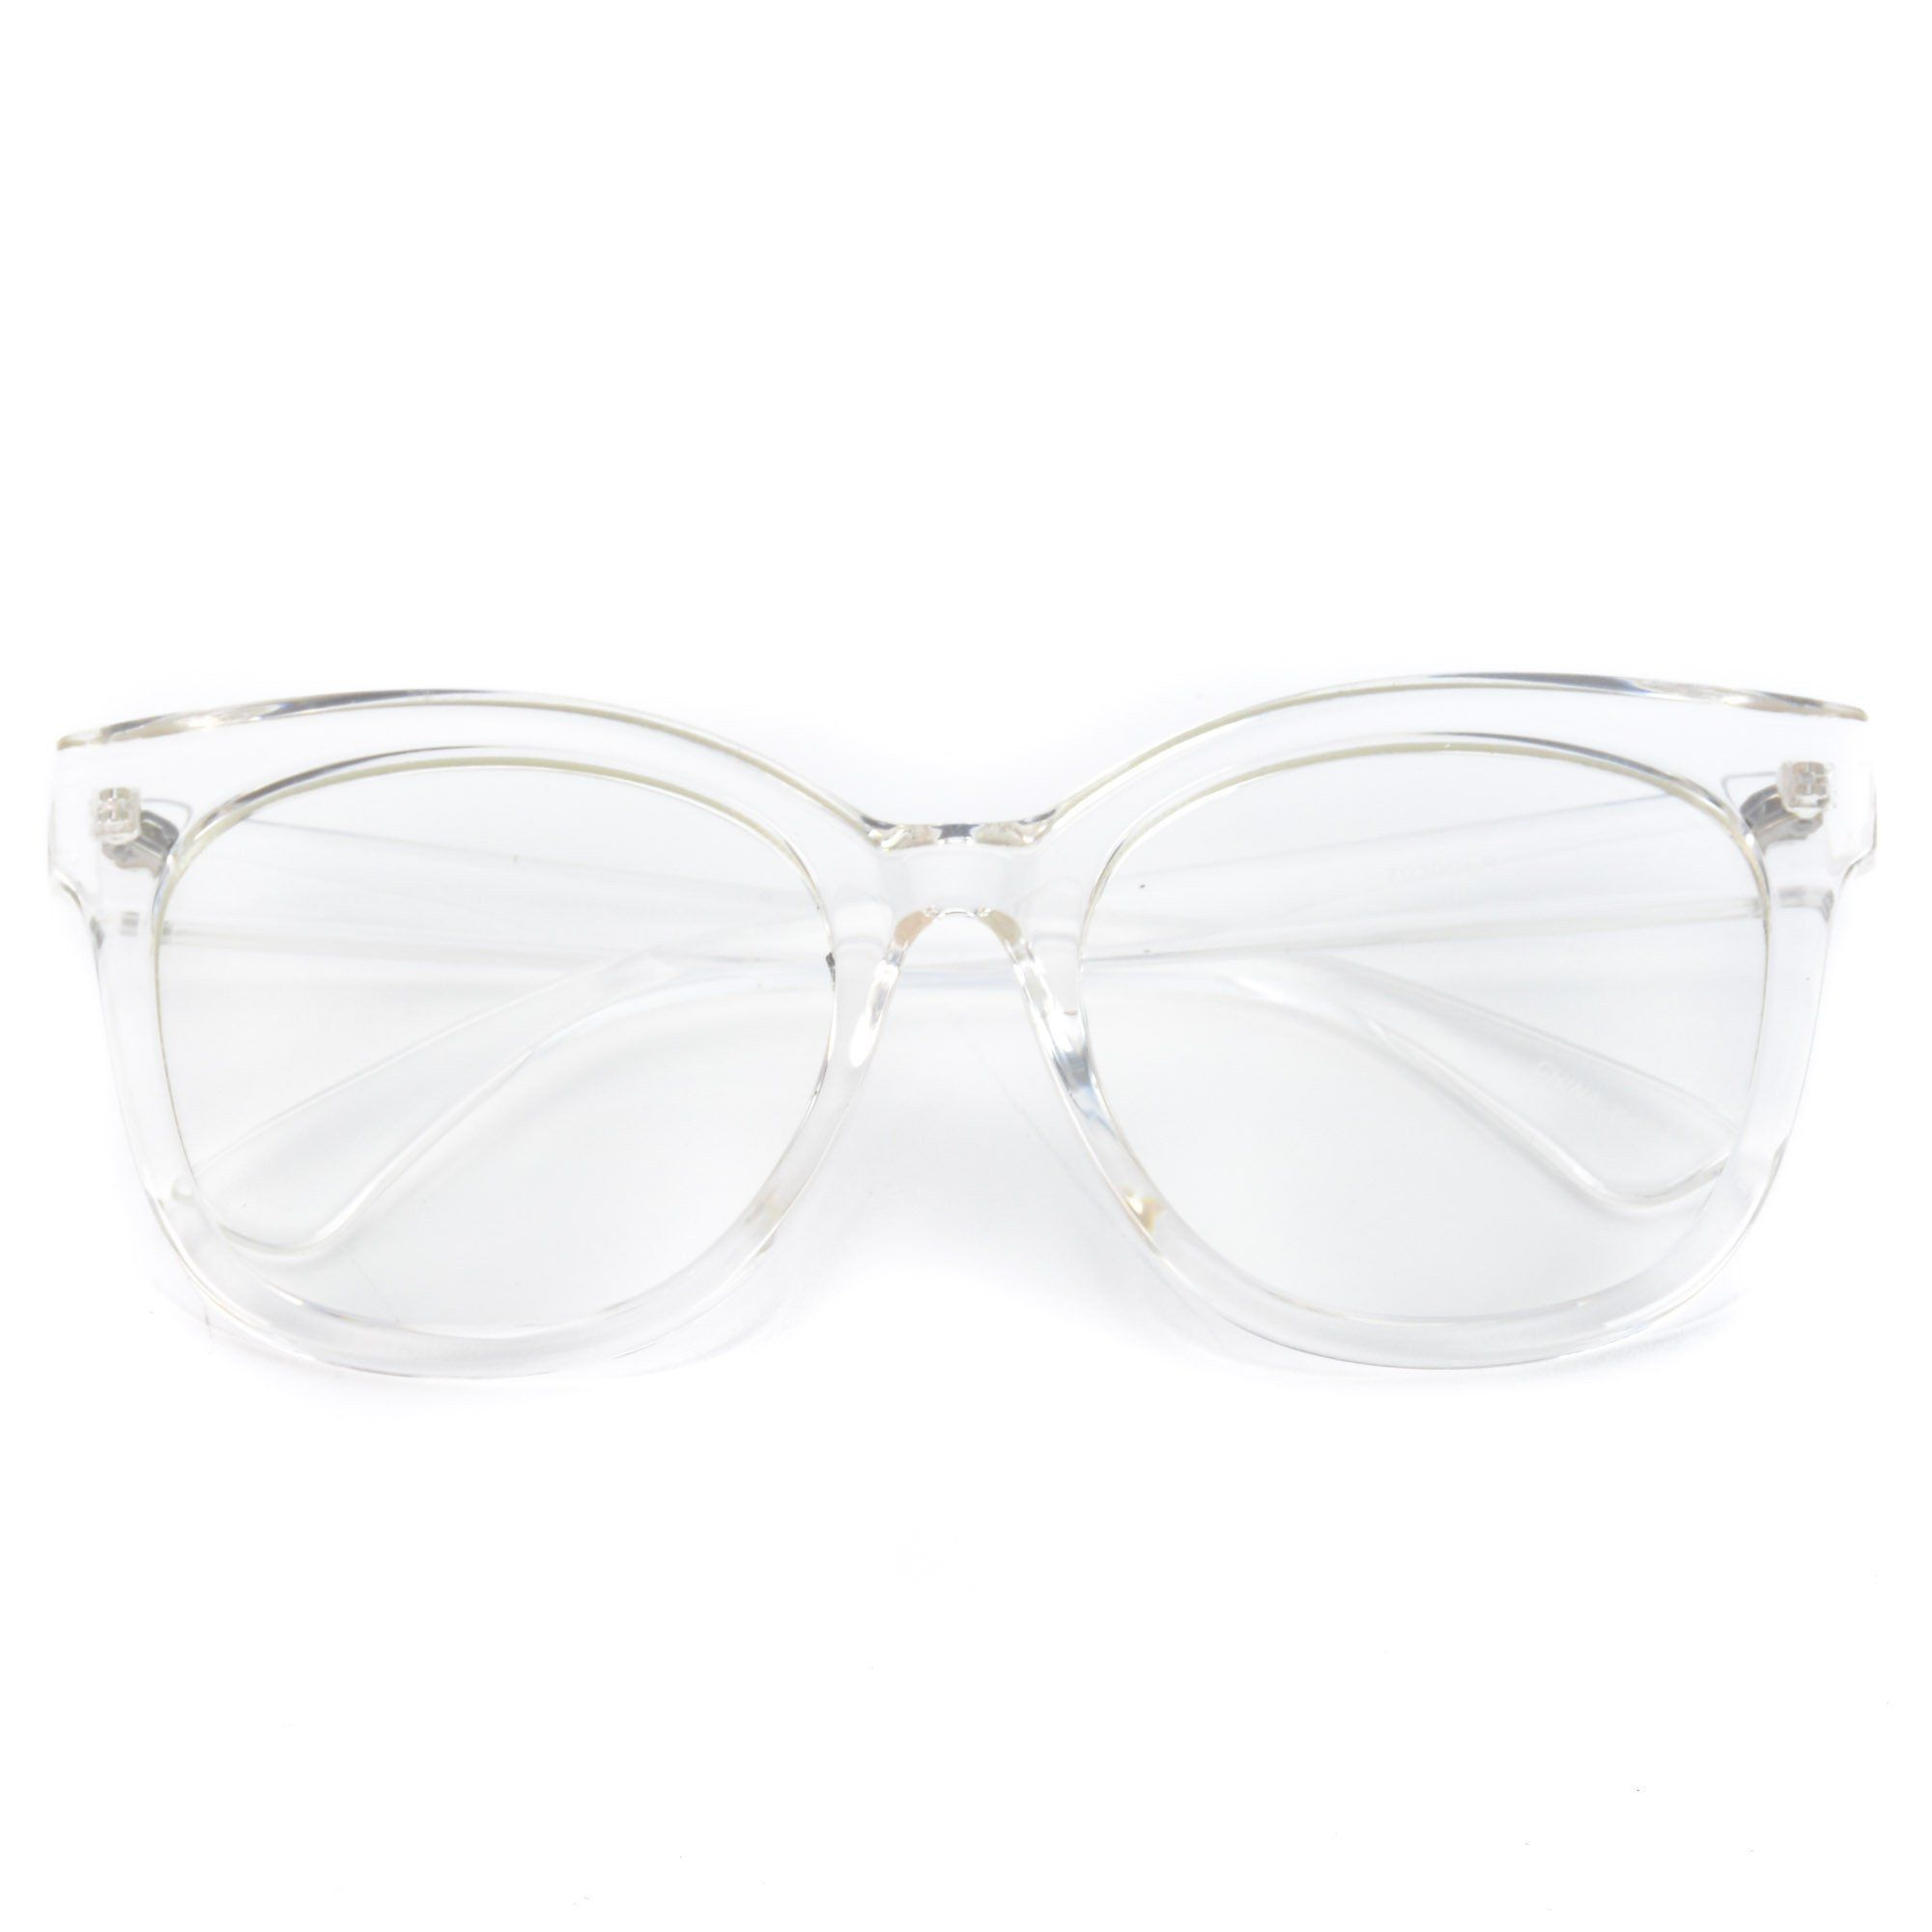 Whiskey Oversized Thick Frame Clear Non-Prescription Glasses ...